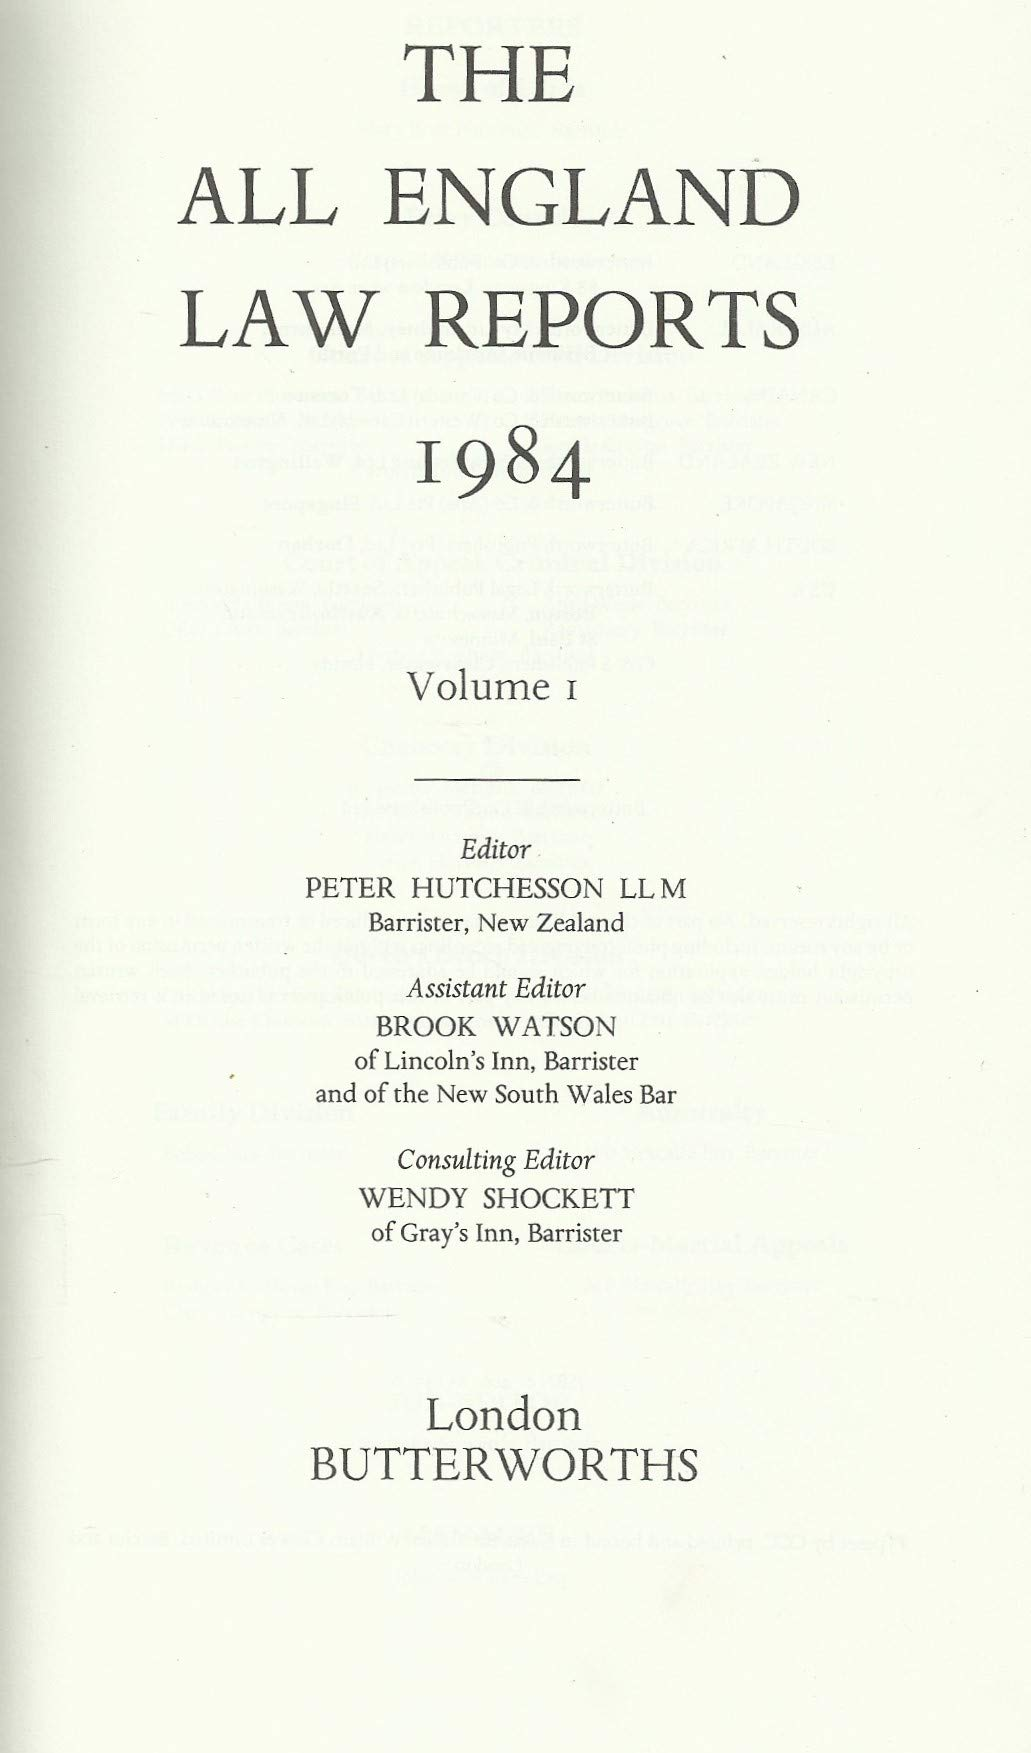 The All England Law Reports: 1984 vol 1